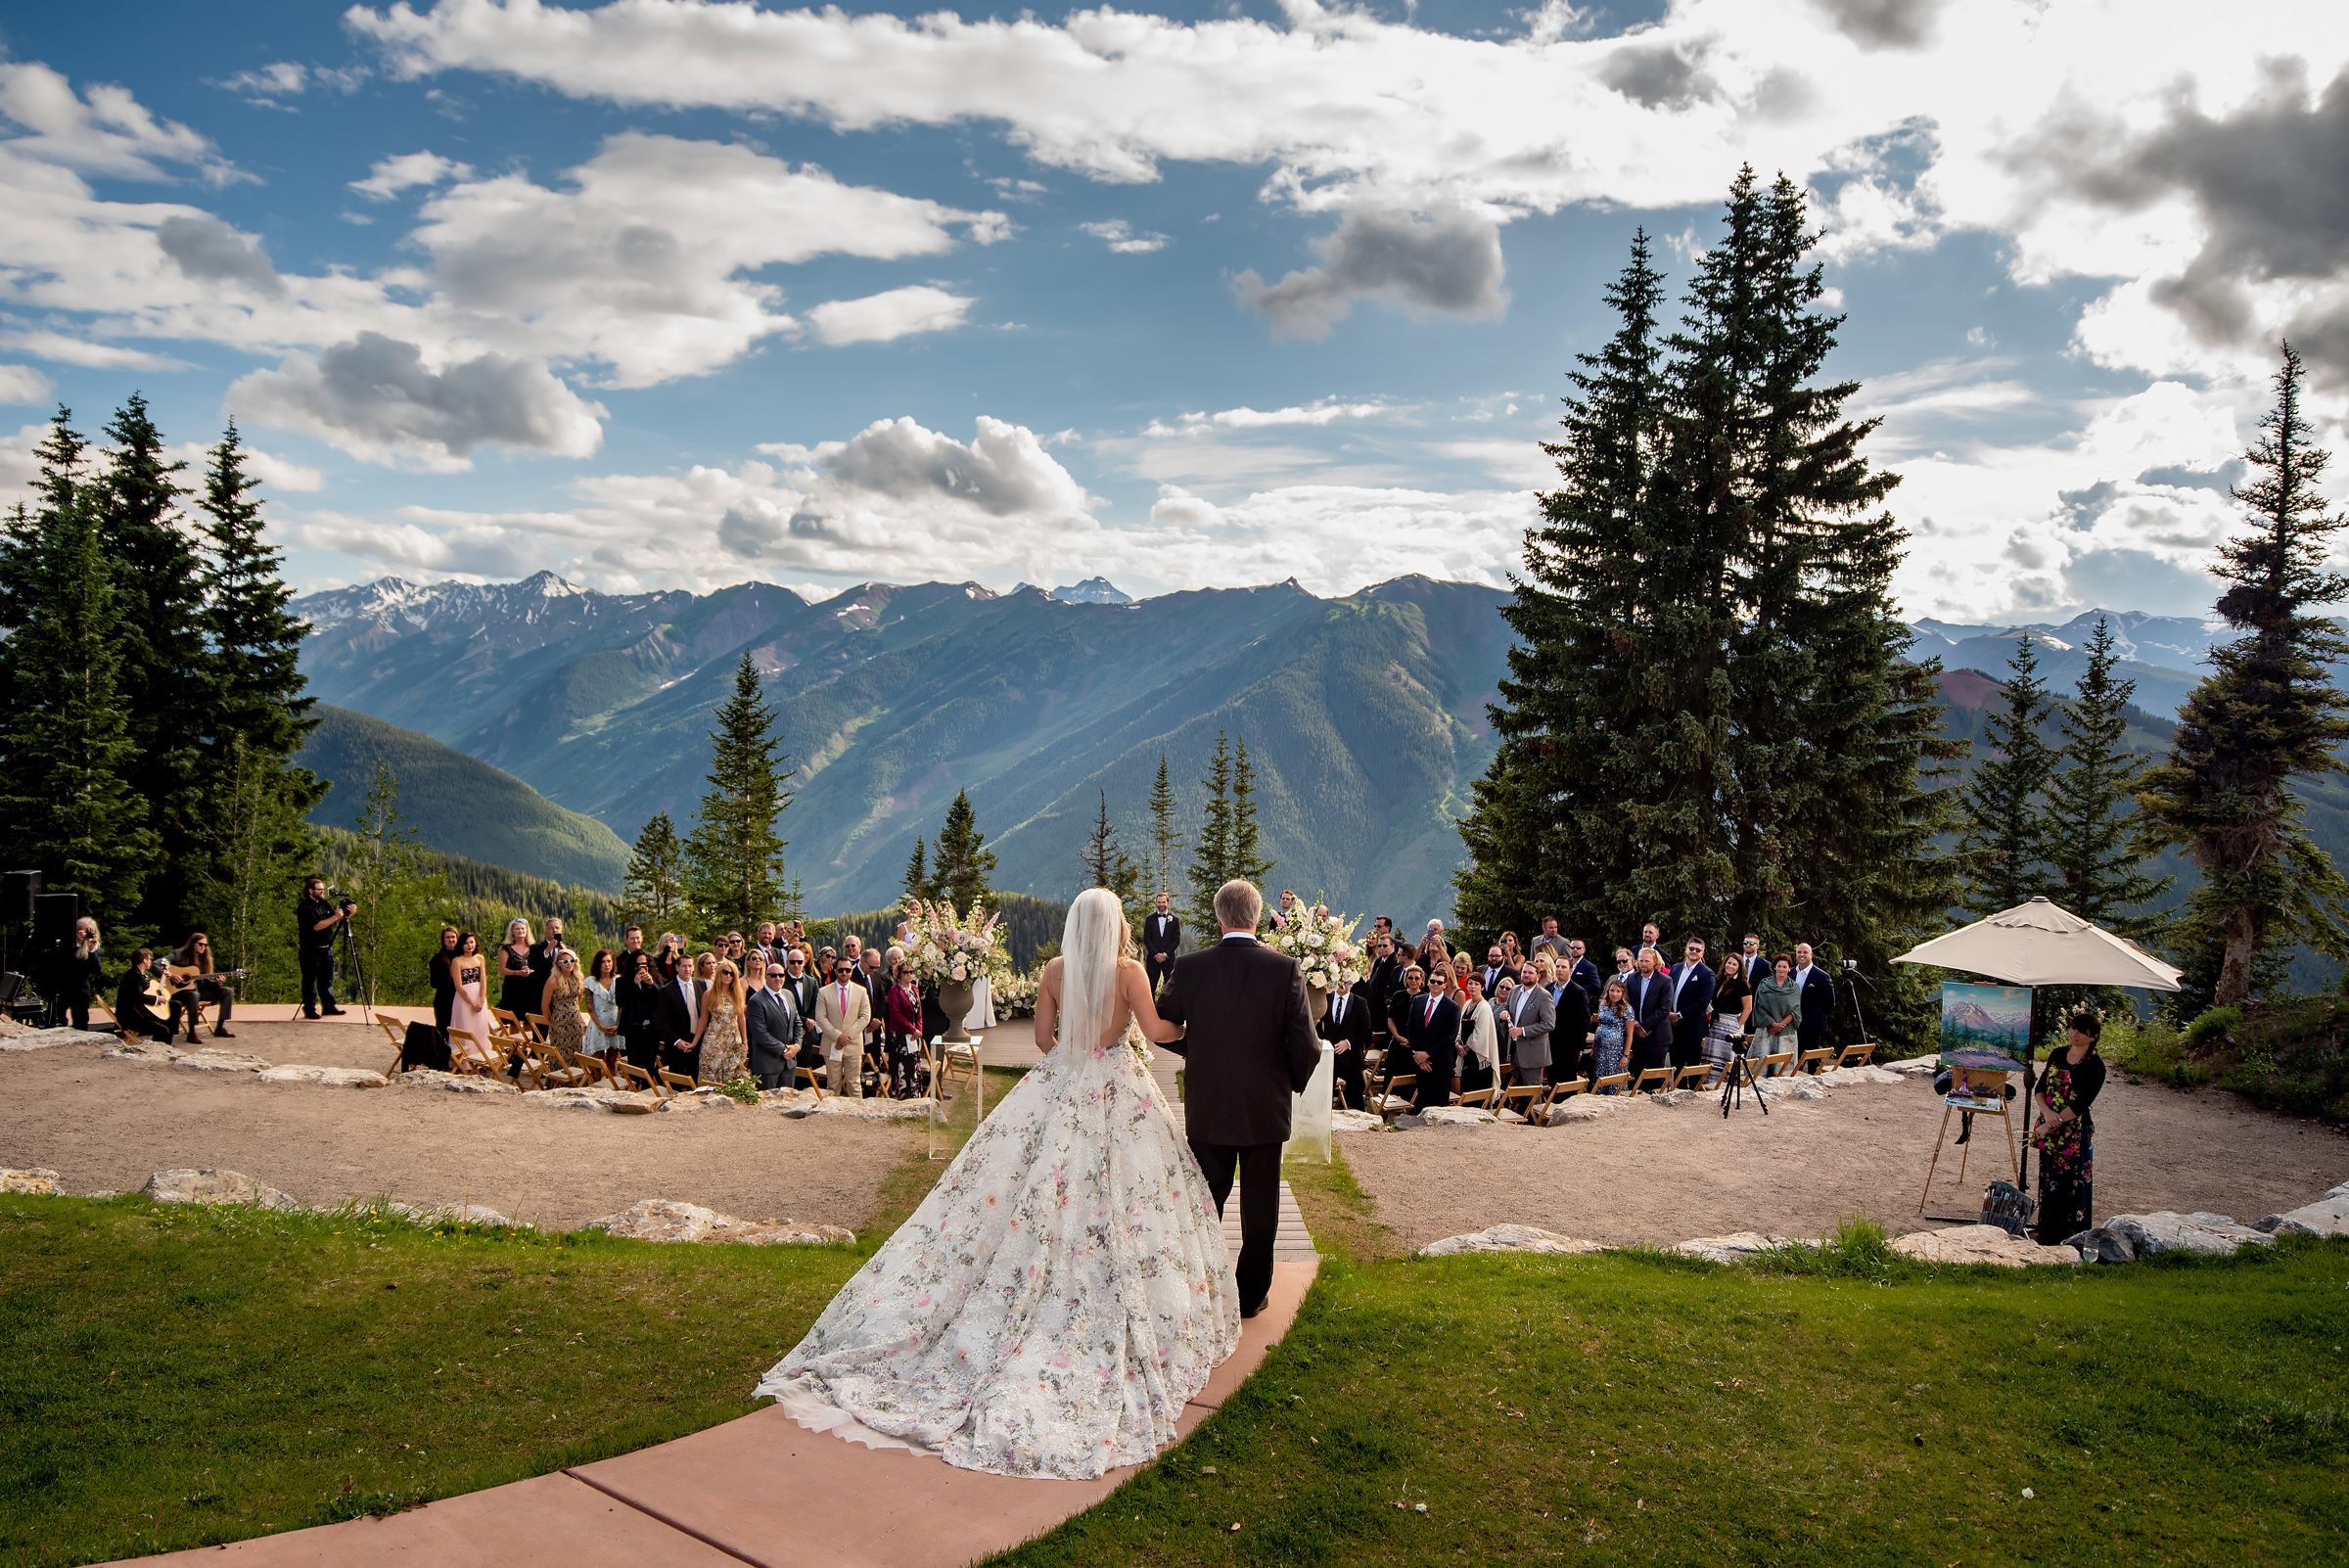 Mountain wedding ceremony - photo by Morgan Lynn Photography